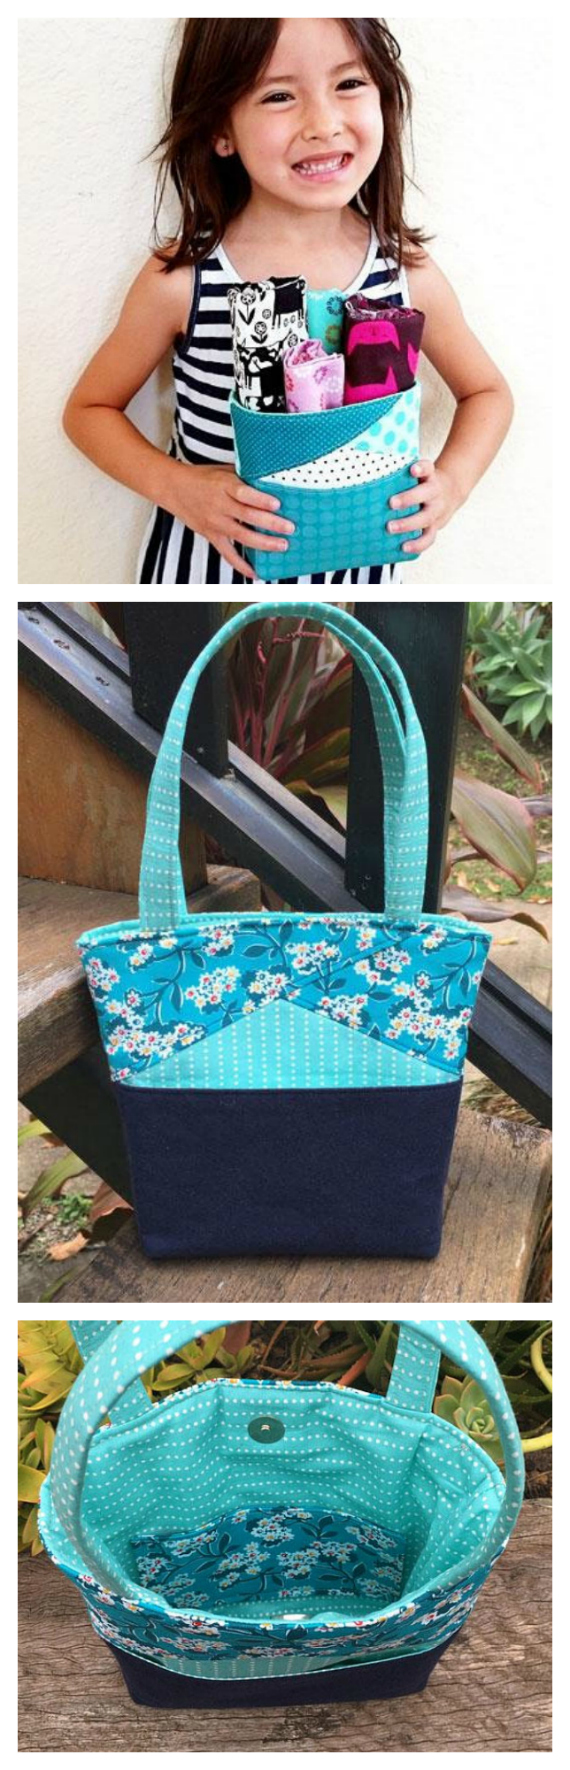 Here's a great pattern for a beginner sewer, for a quick and easy sew, to make you this adorable Stand Up Clutch bag. And the great news is the Stand Up Clutch comes in three sizes (small, medium and large) which enables you to make a clutch to suit any and every occasion.